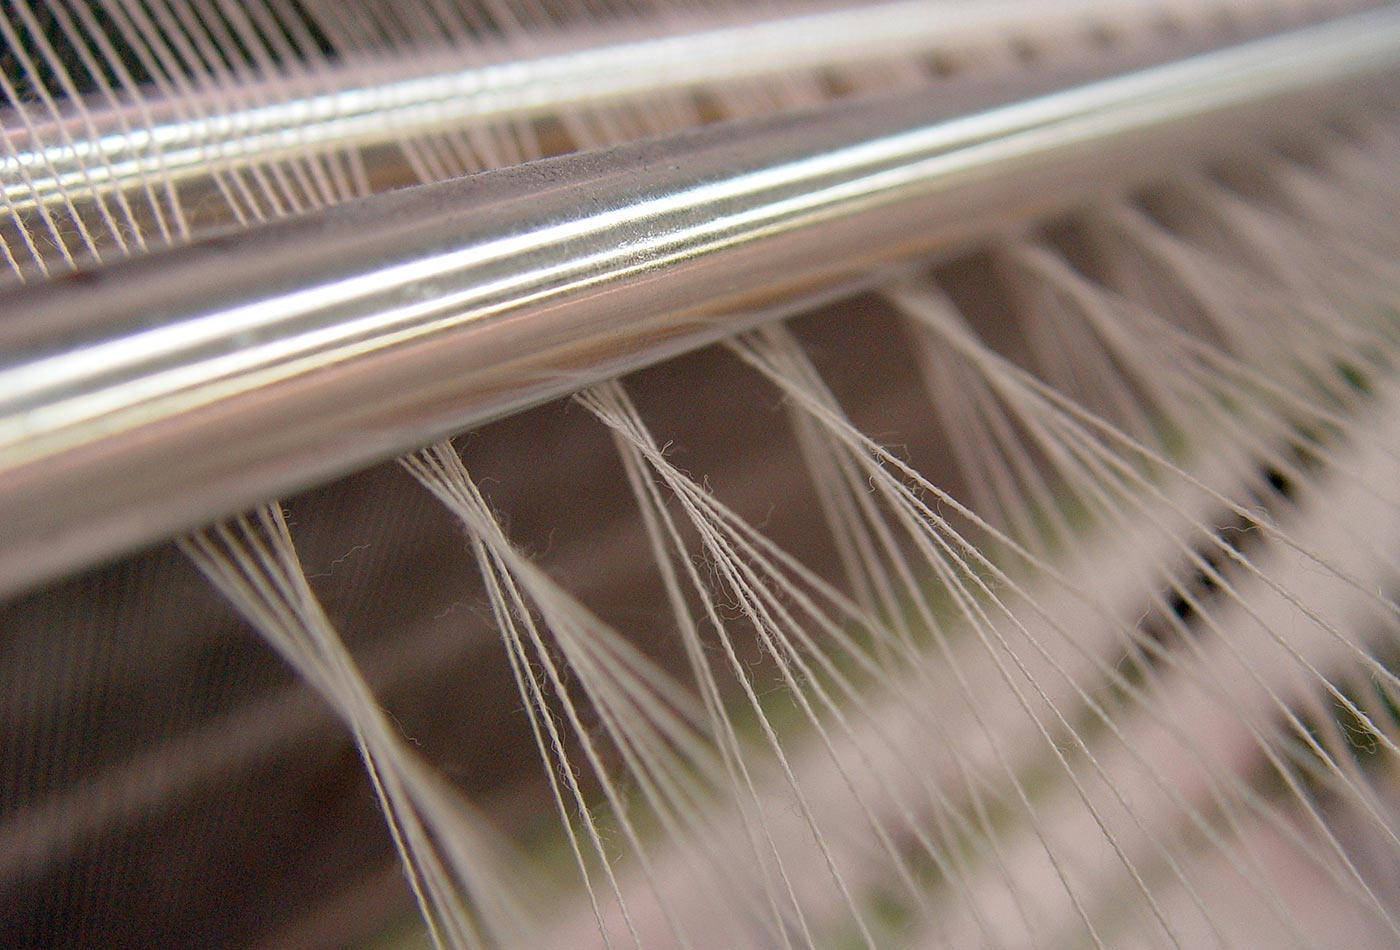 Woolen threads being woven in a loom